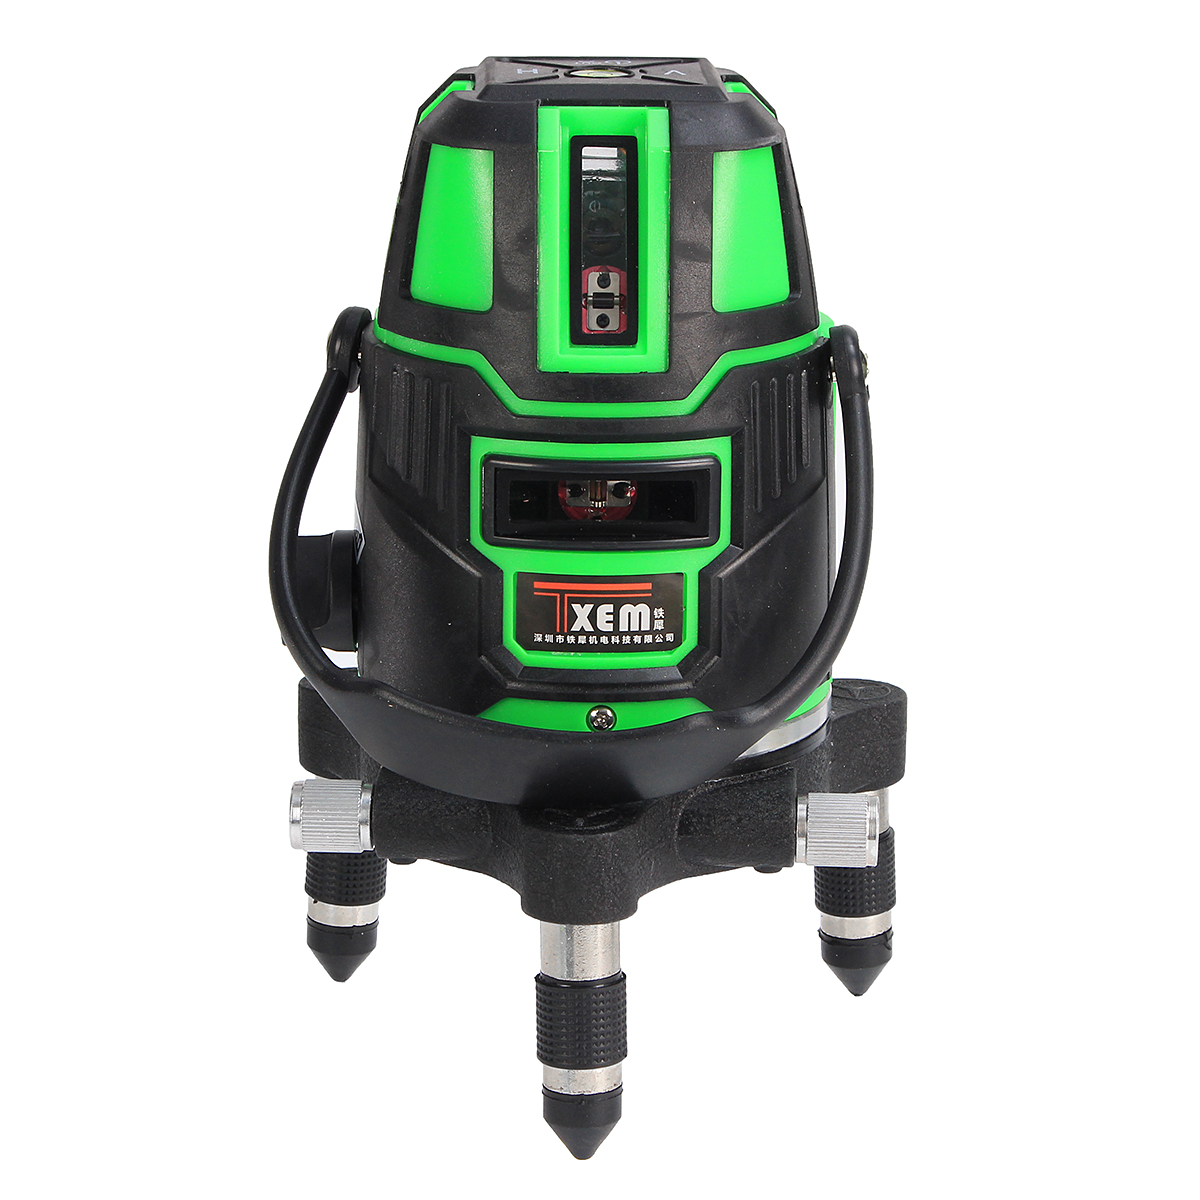 JIGUOOR Portable 360 degree 3D Rotary Green 5 Line Laser Beam Level Self Leveling Vertical Horizontal Level Measuring Tool 5 line red green 360 degree rotary laser level high accuracy self leveling cross meter construction level measuring tool